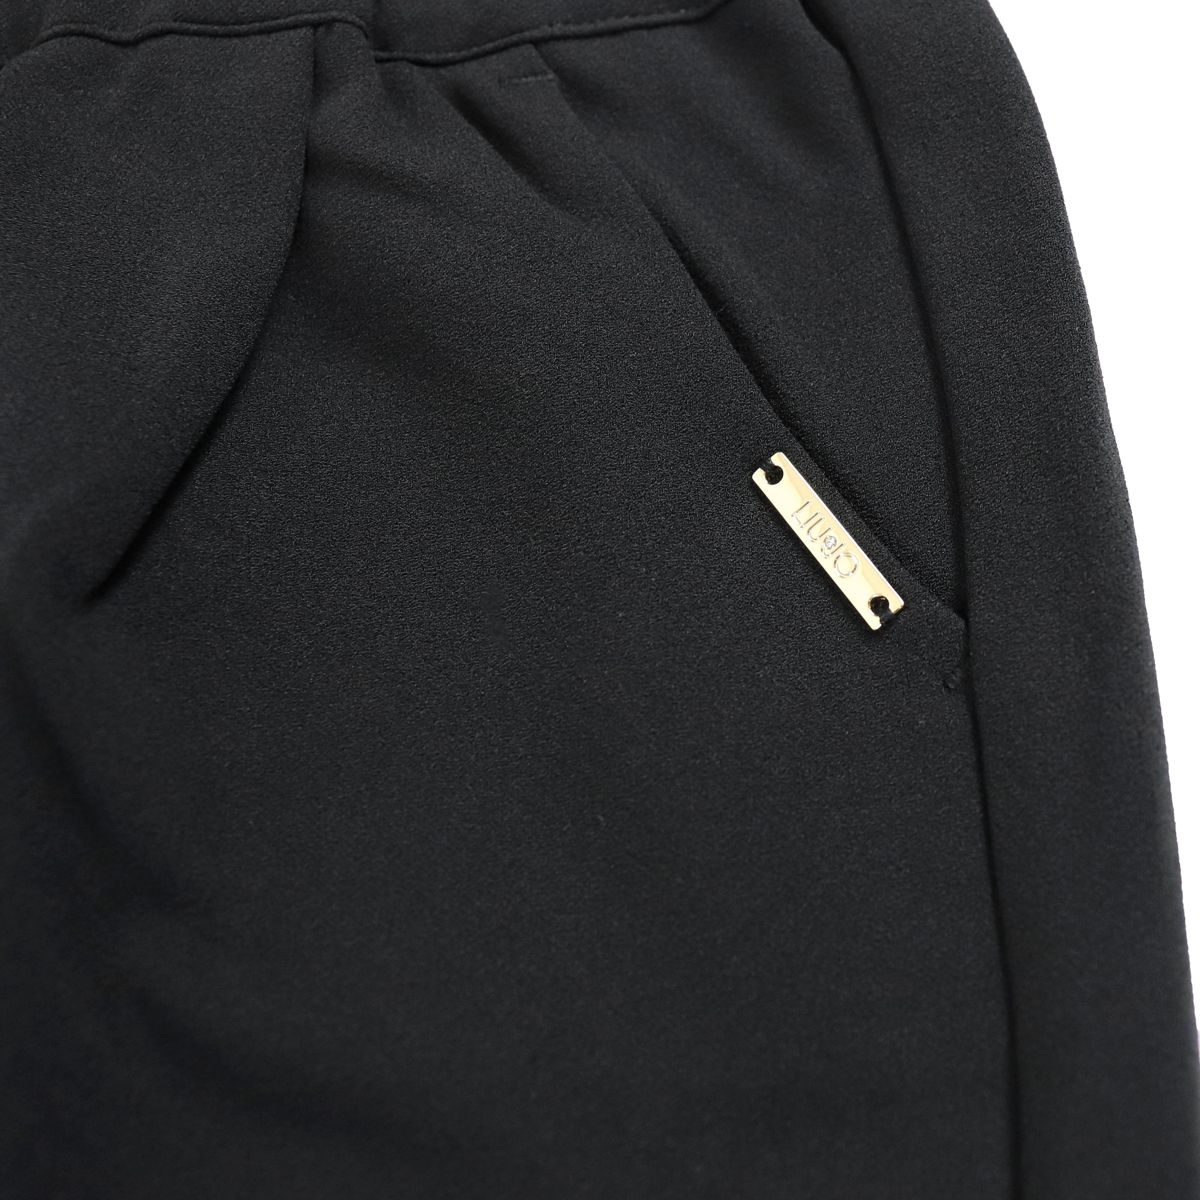 Jojjing trousers with elastic and coulise Black Liu Jo